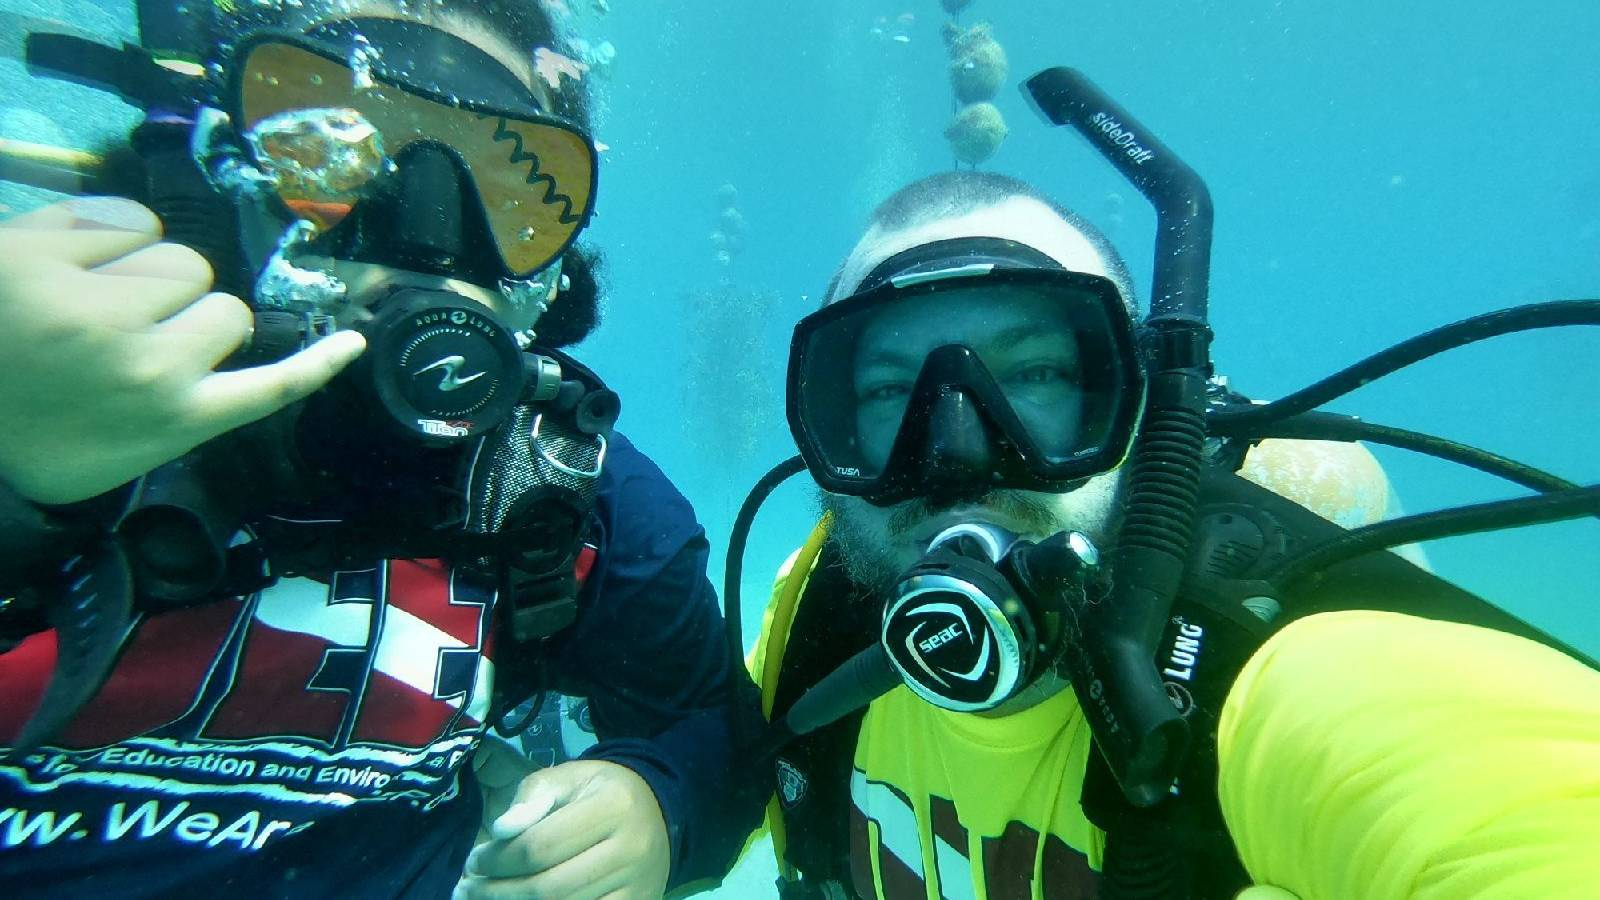 <p>NPCA worked with veterans from Divers for Education &amp; Environmental Protection (DEEP) to outplant coral in the Florida Keys National Marine Sanctuary for World Ocean Day.</p>